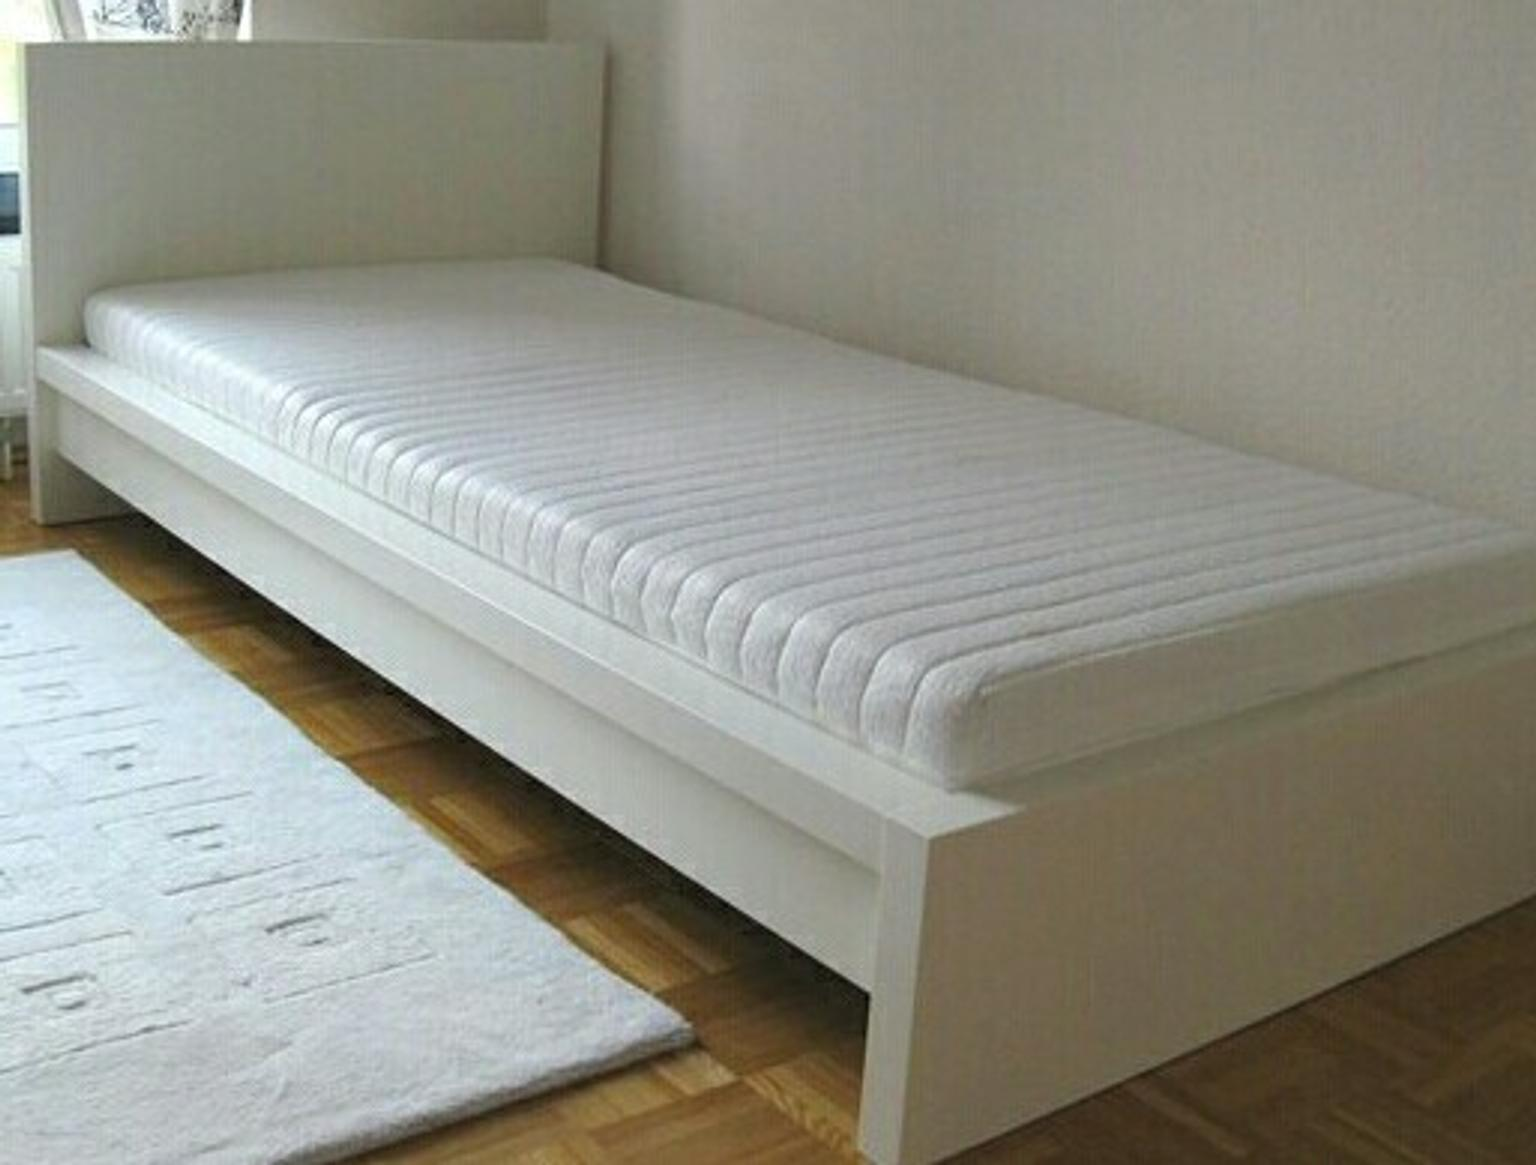 Malm Bett Weiß 90x200 In 67549 Worms For 45 00 For Sale Shpock